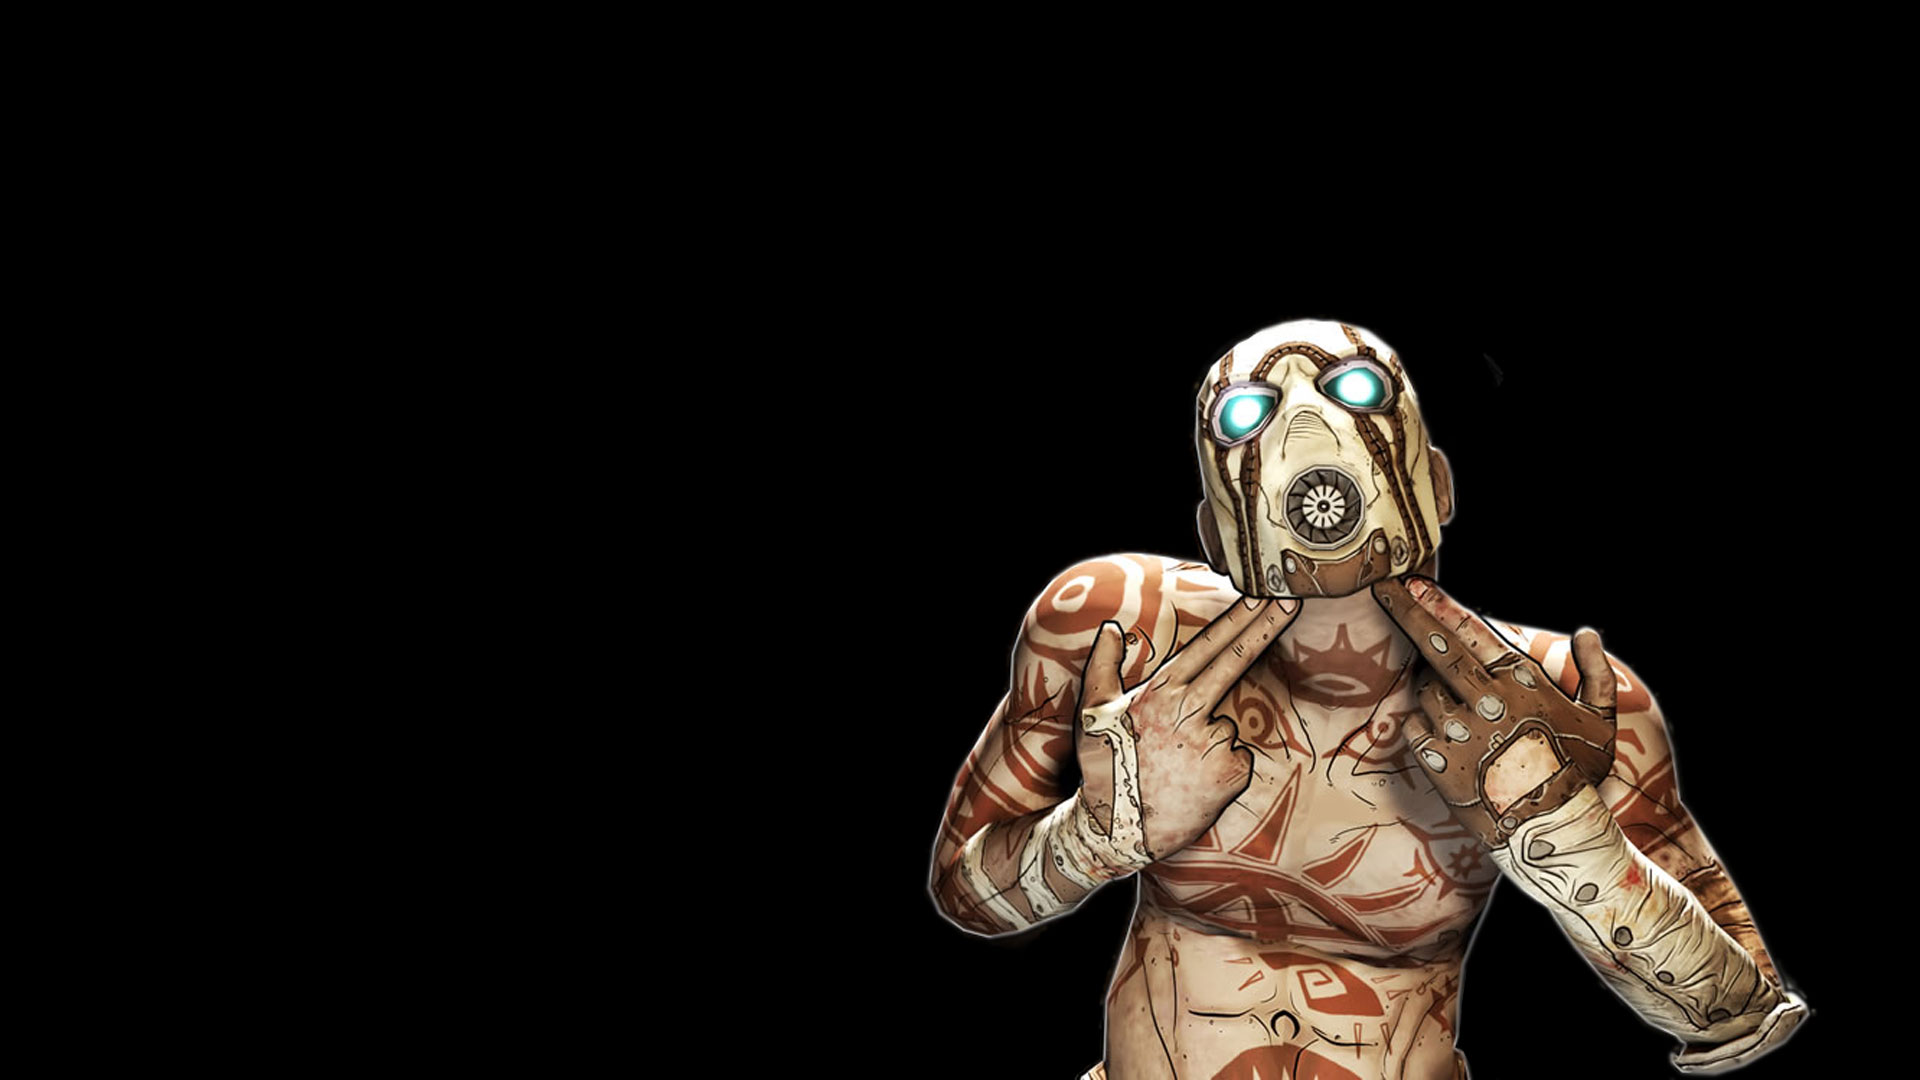 Borderlands 2 Computer Wallpapers, Desktop Backgrounds ...